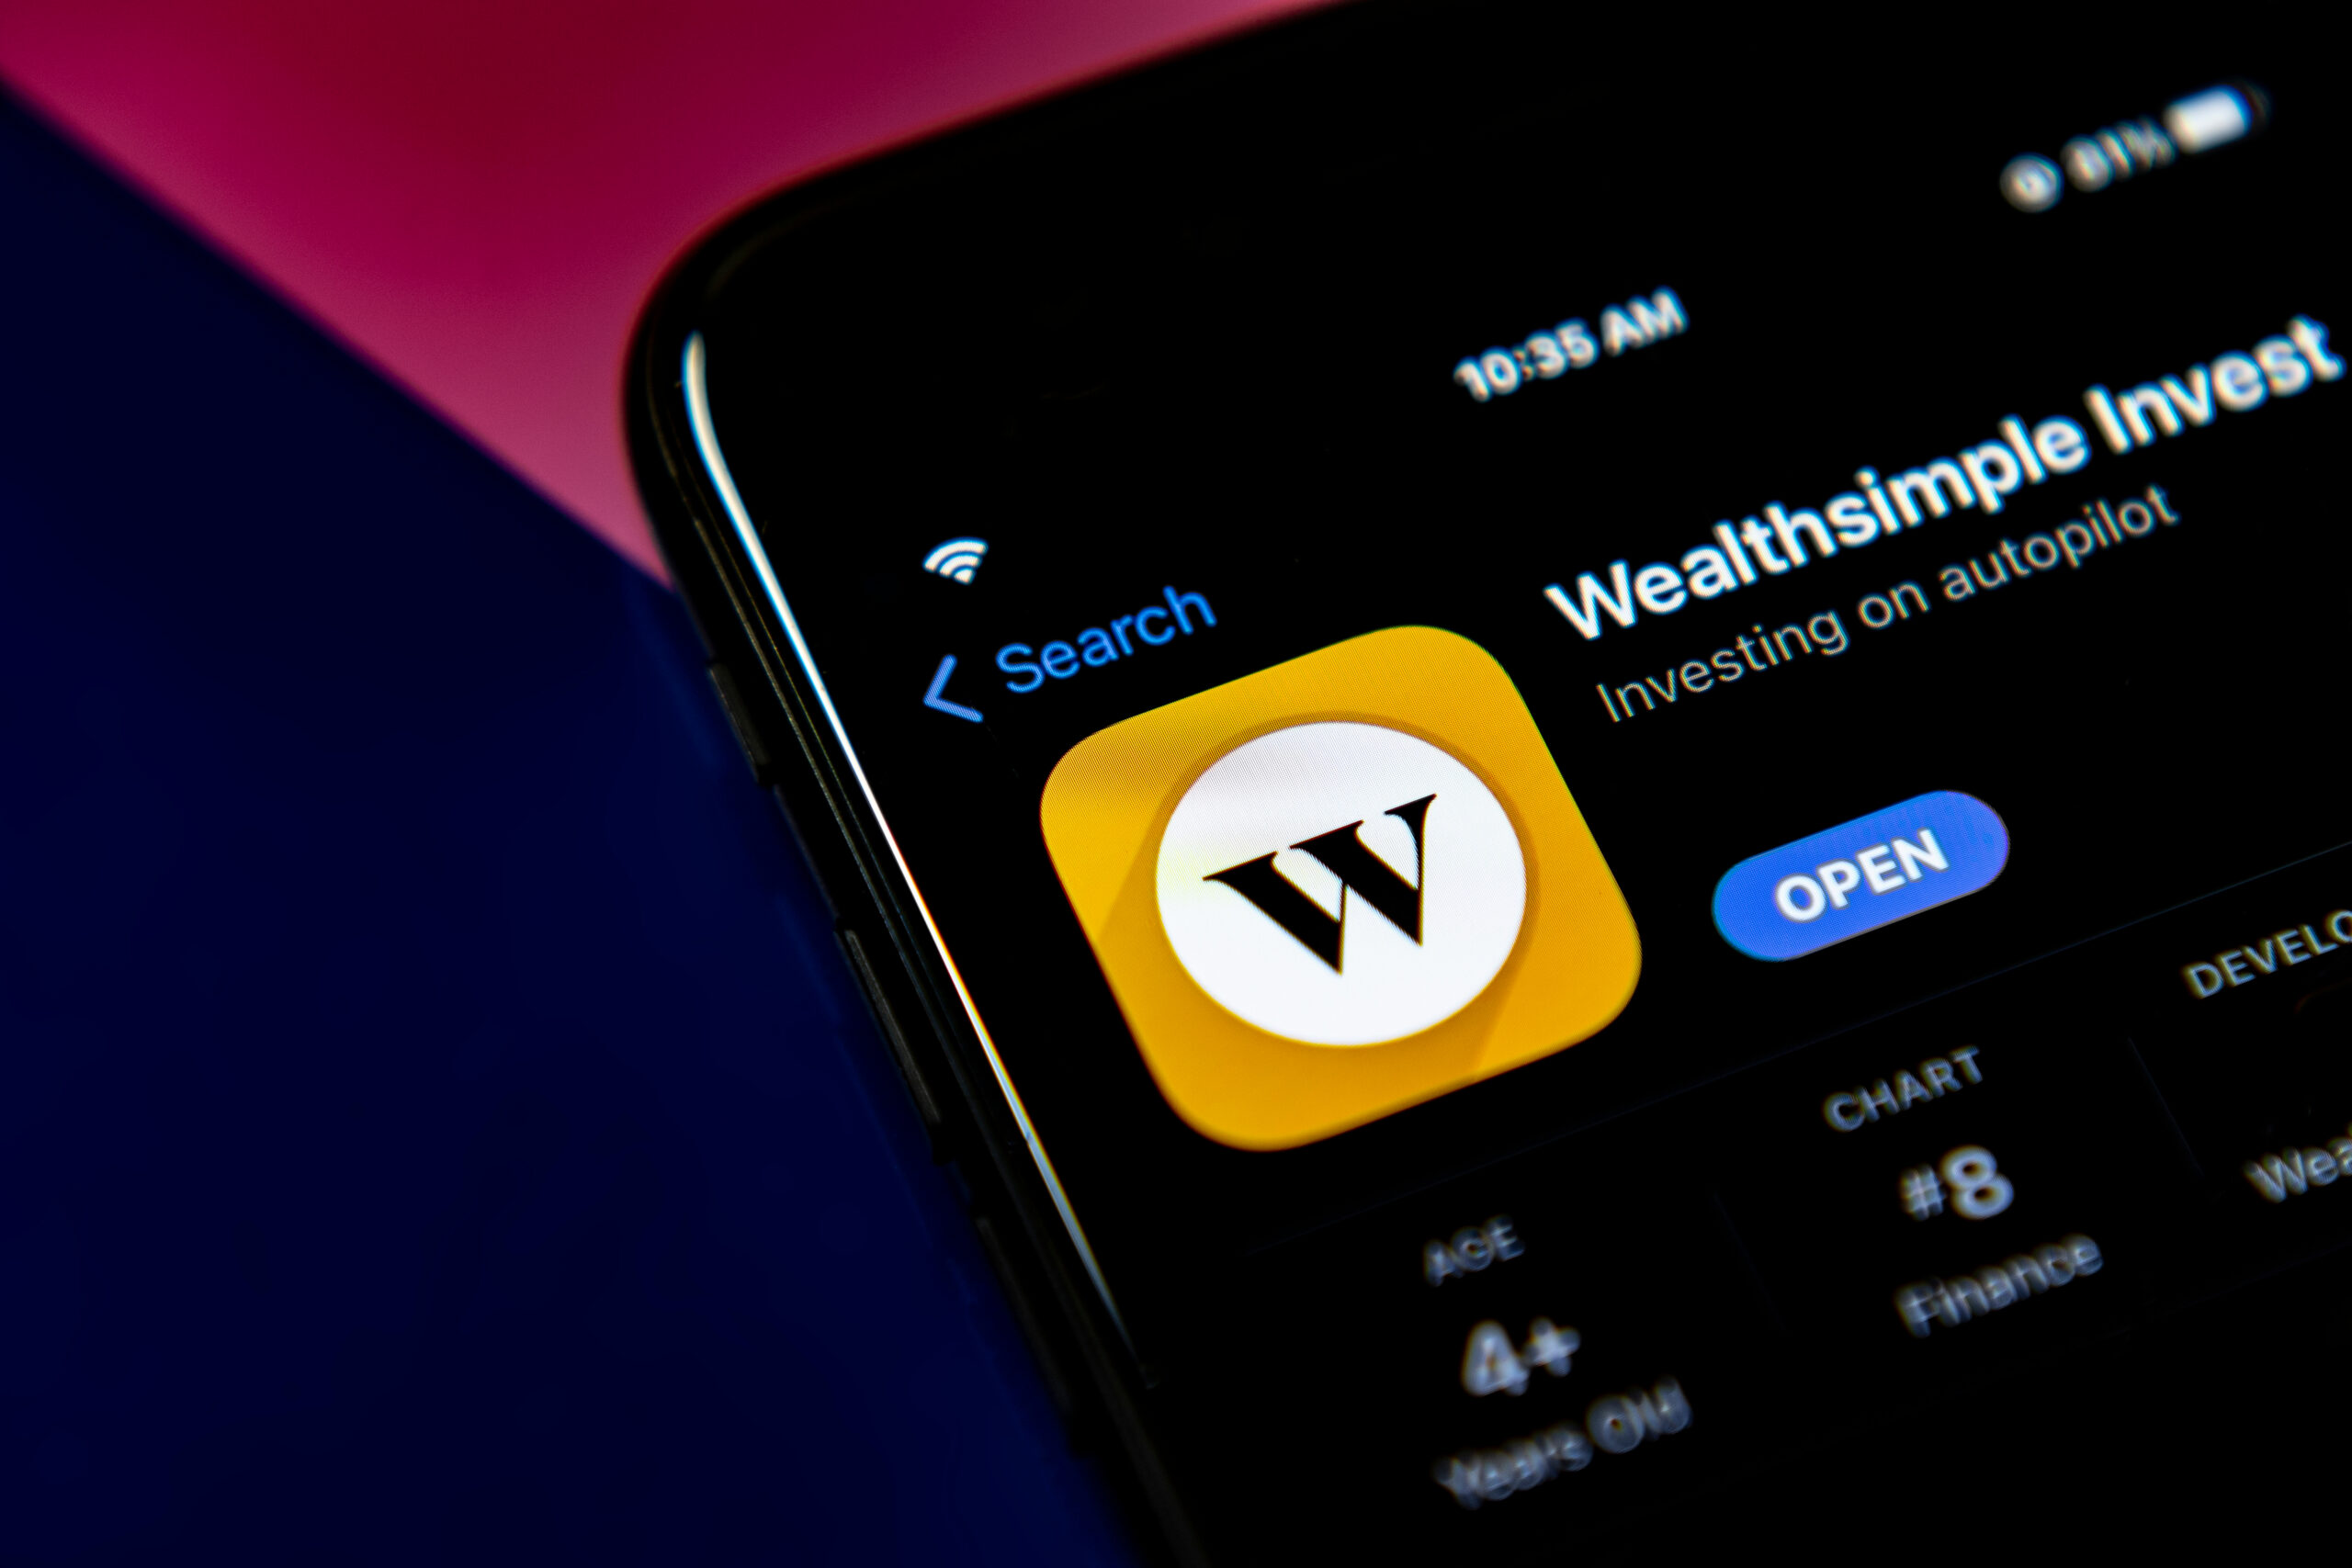 Which Investment Platform is Right for Me? Wealthsimple or Interactive Brokers?